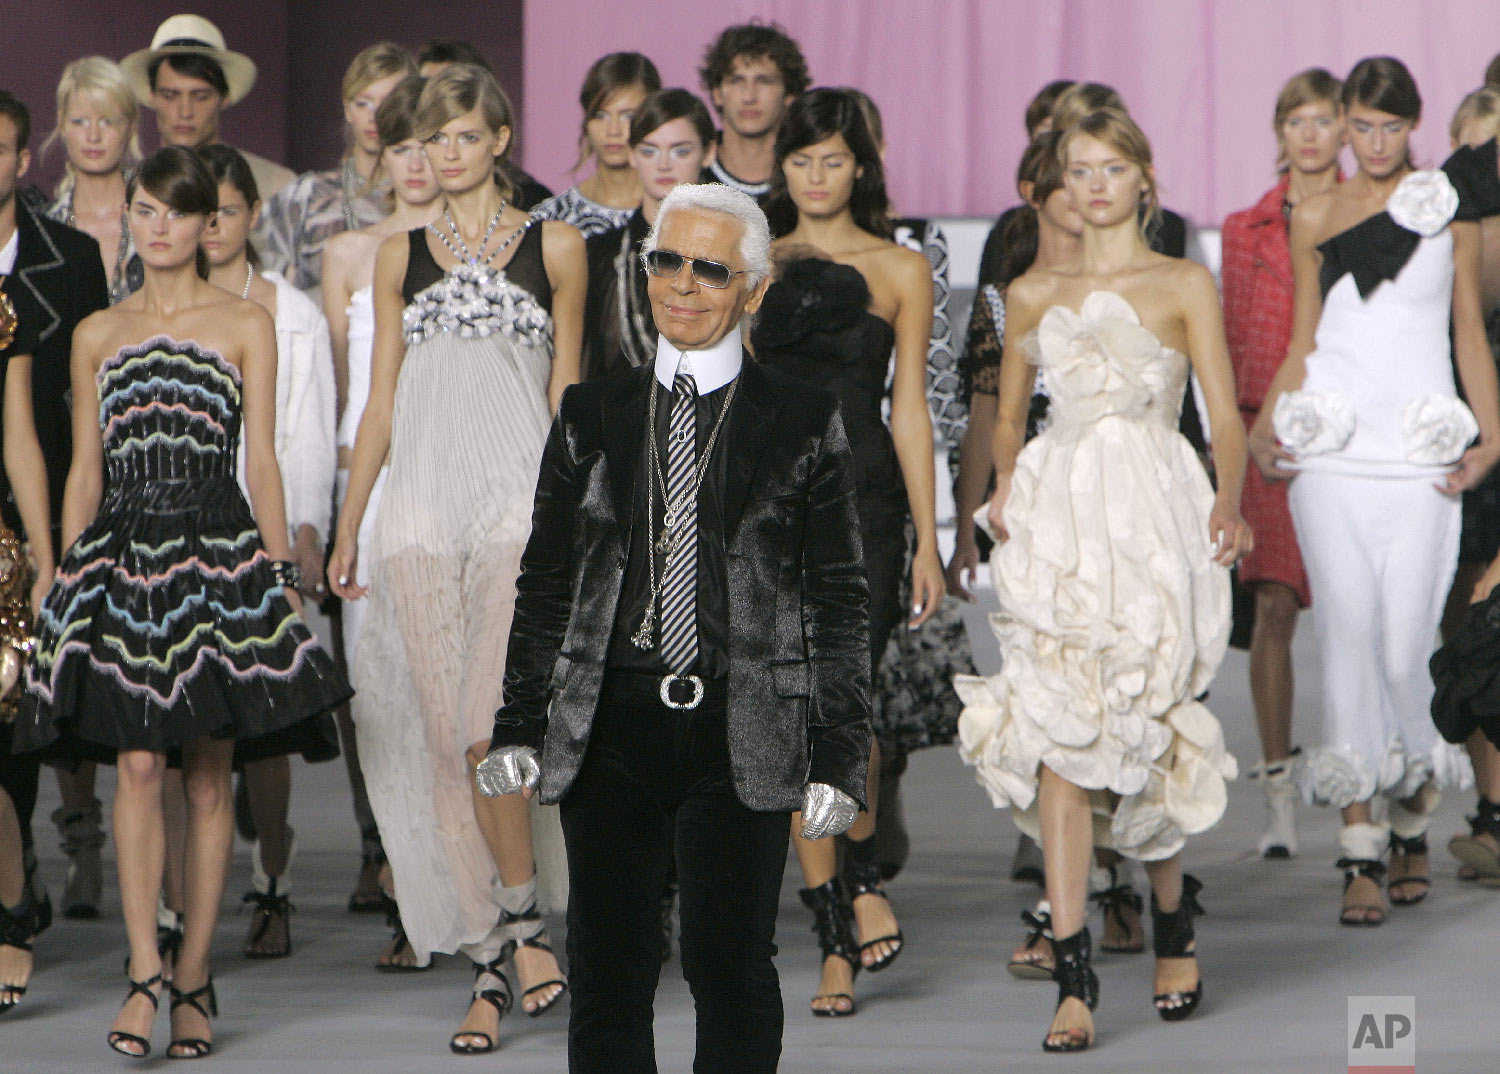 German fashion designer Karl Lagerfeld acknowledges applause from the public during the presentation of his Spring/Summer ready to wear 2006 collection for Chanel, in Paris, Oct. 7, 2005. (AP Photo/Michel Euler)